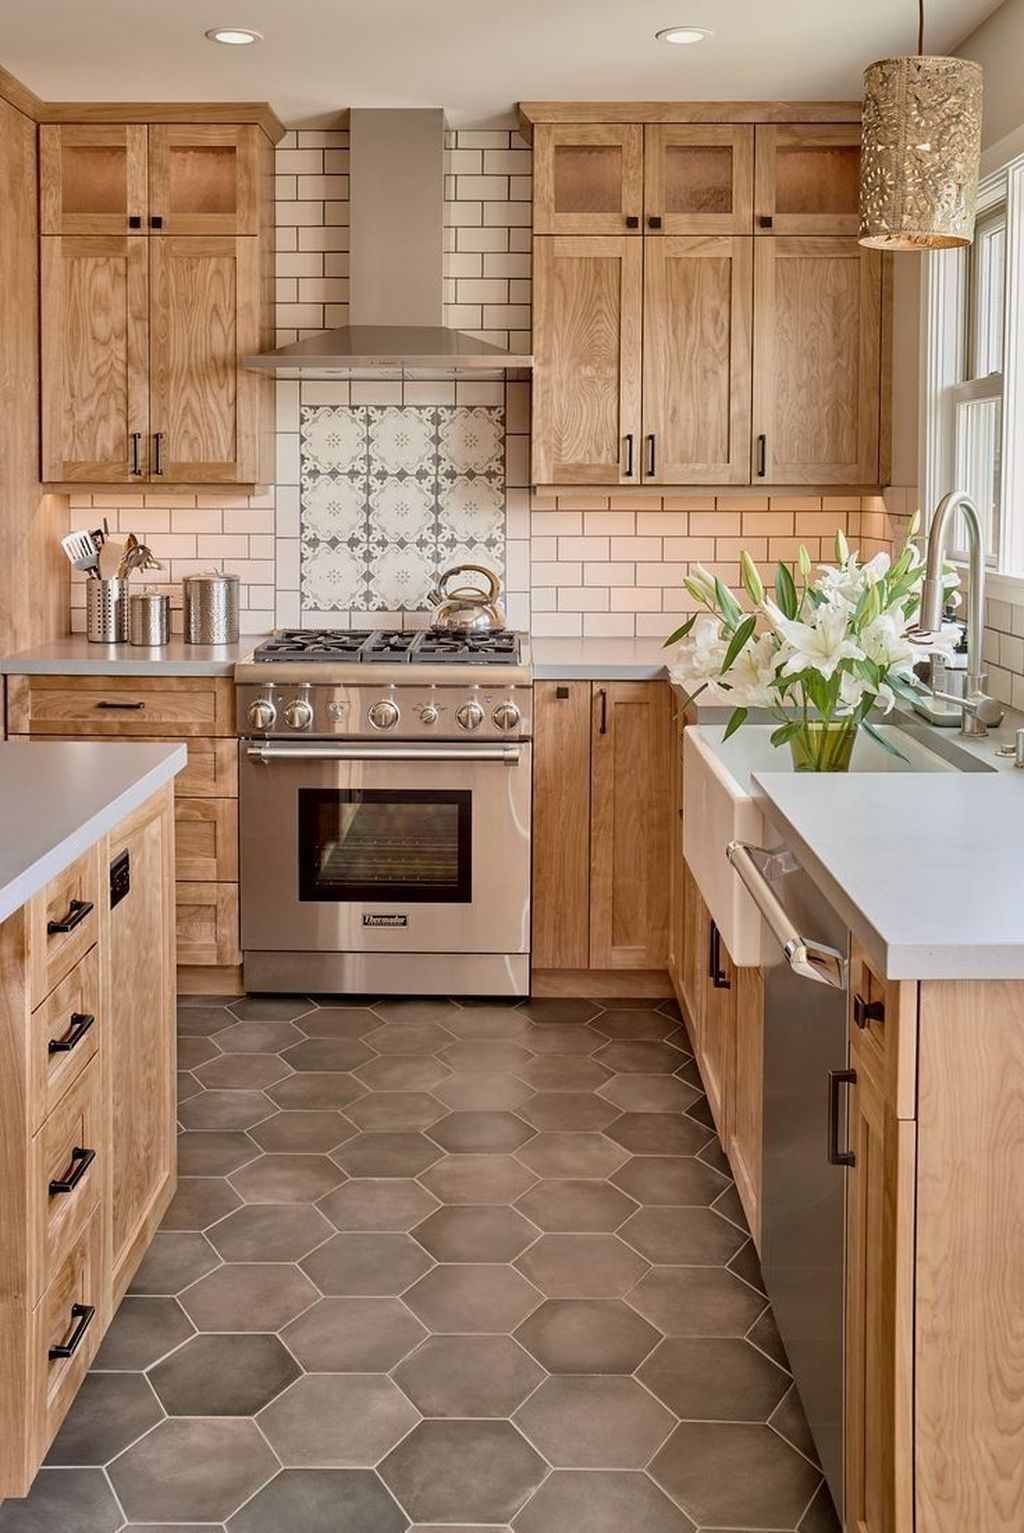 Modern Farmhouse Kitchen Cabinet Makeover Design Ideas14